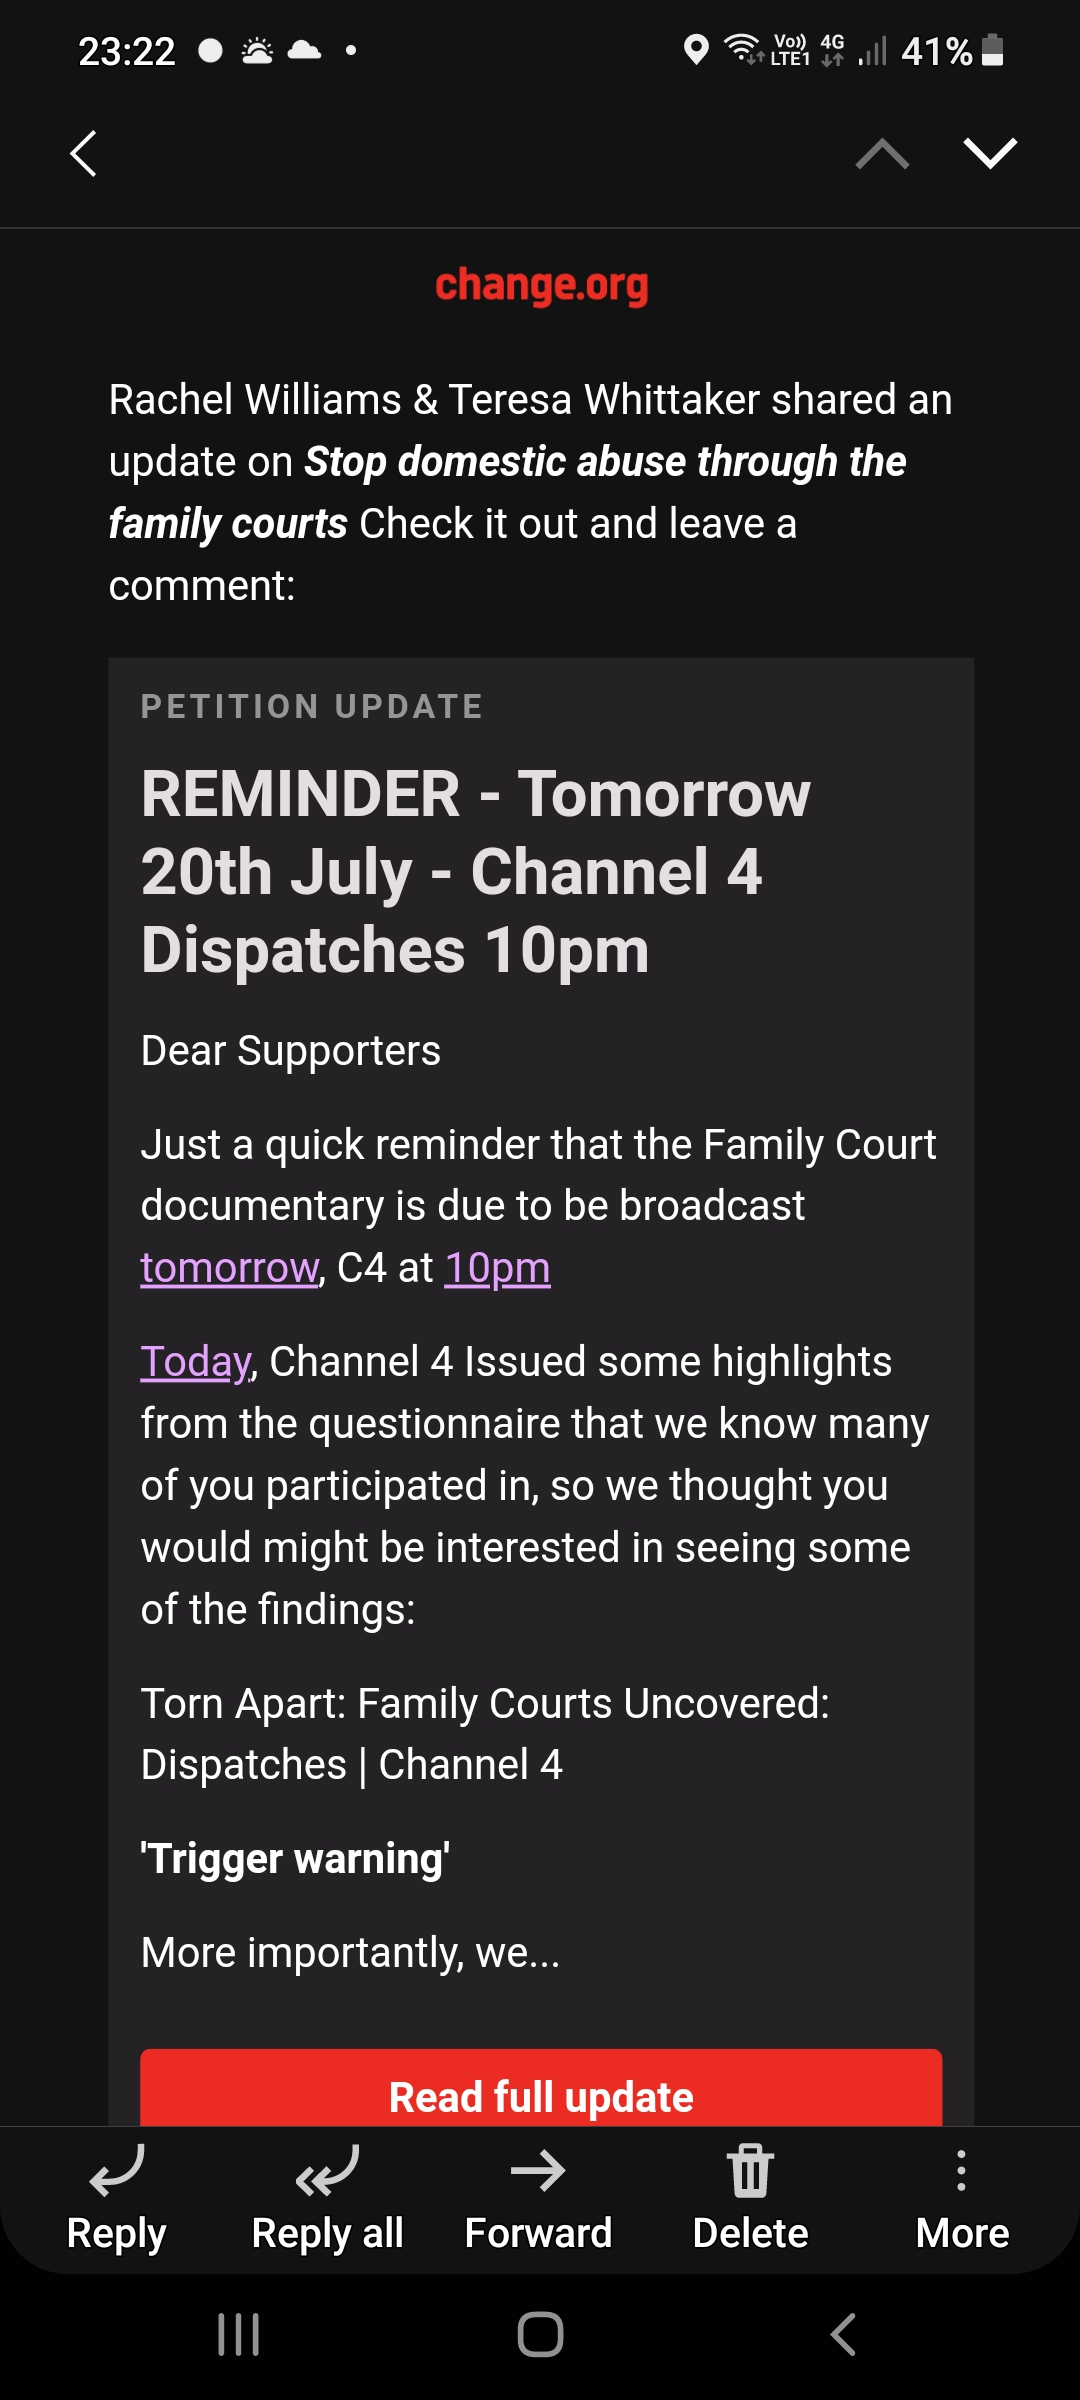 screenshot of a reminder for a channel 4 dispatches programme on family courts which will be shown at 10pm on 20 July 2021